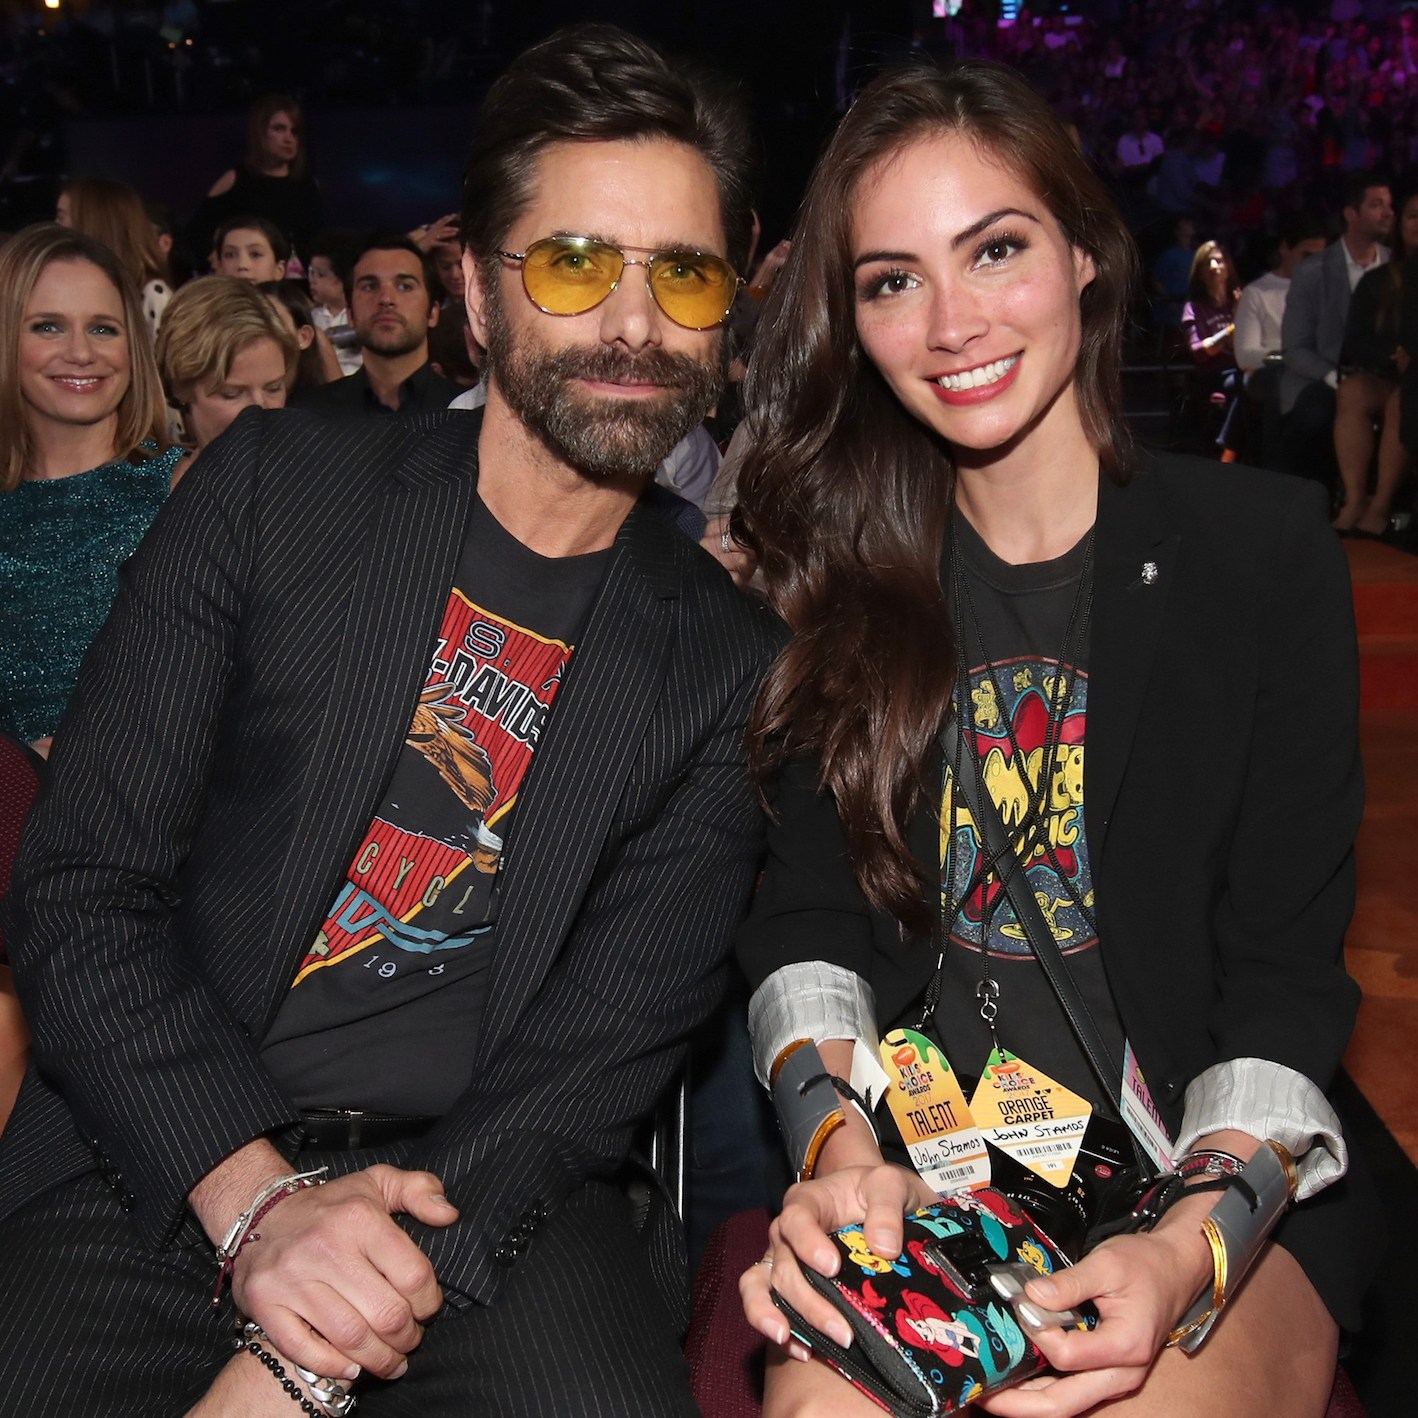 John Stamos and Caitlin McHugh are engaged